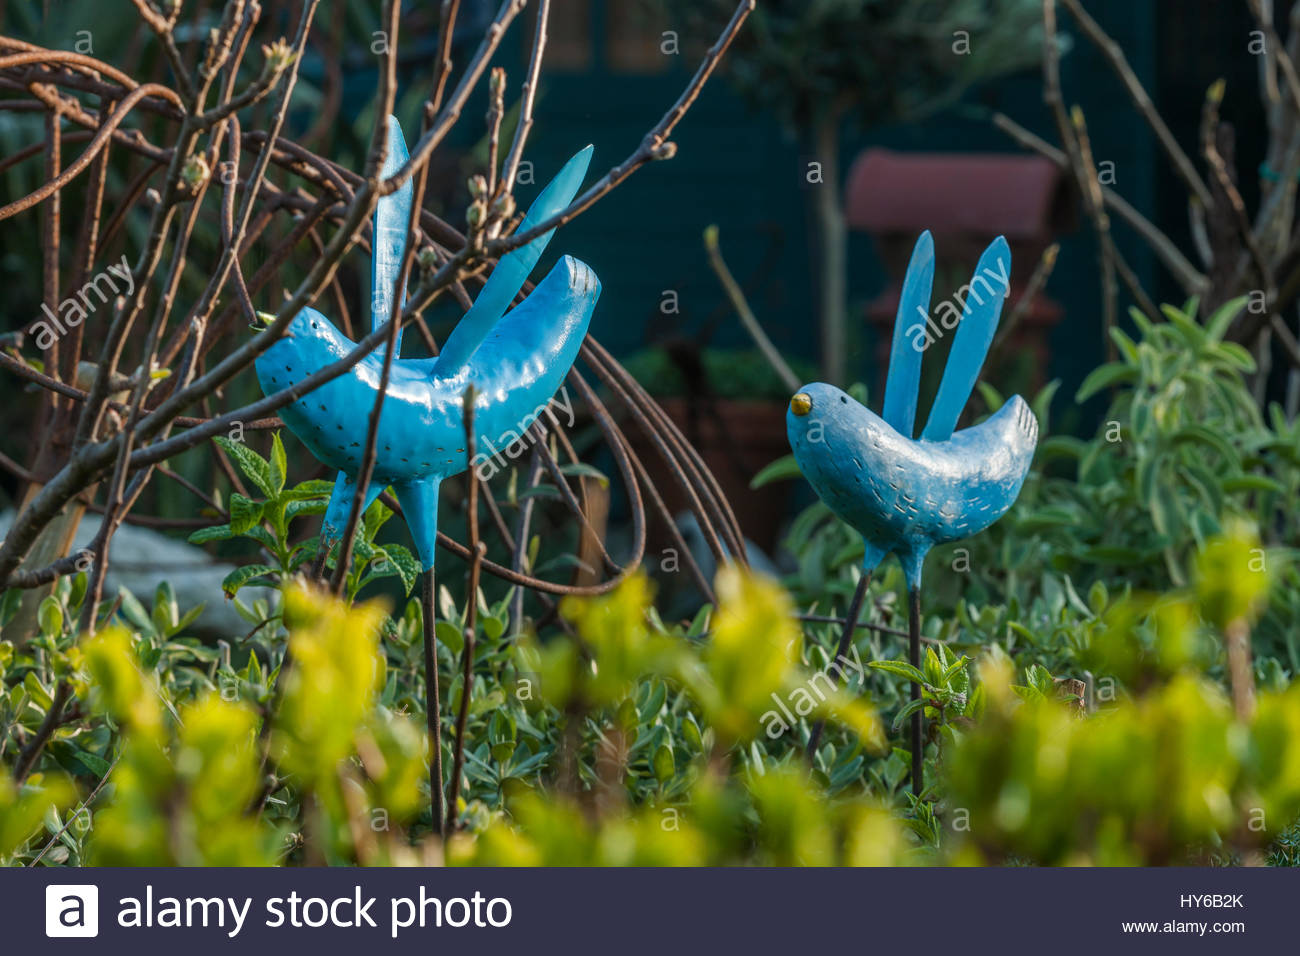 Driftwood garden Spring objects - Stock Image